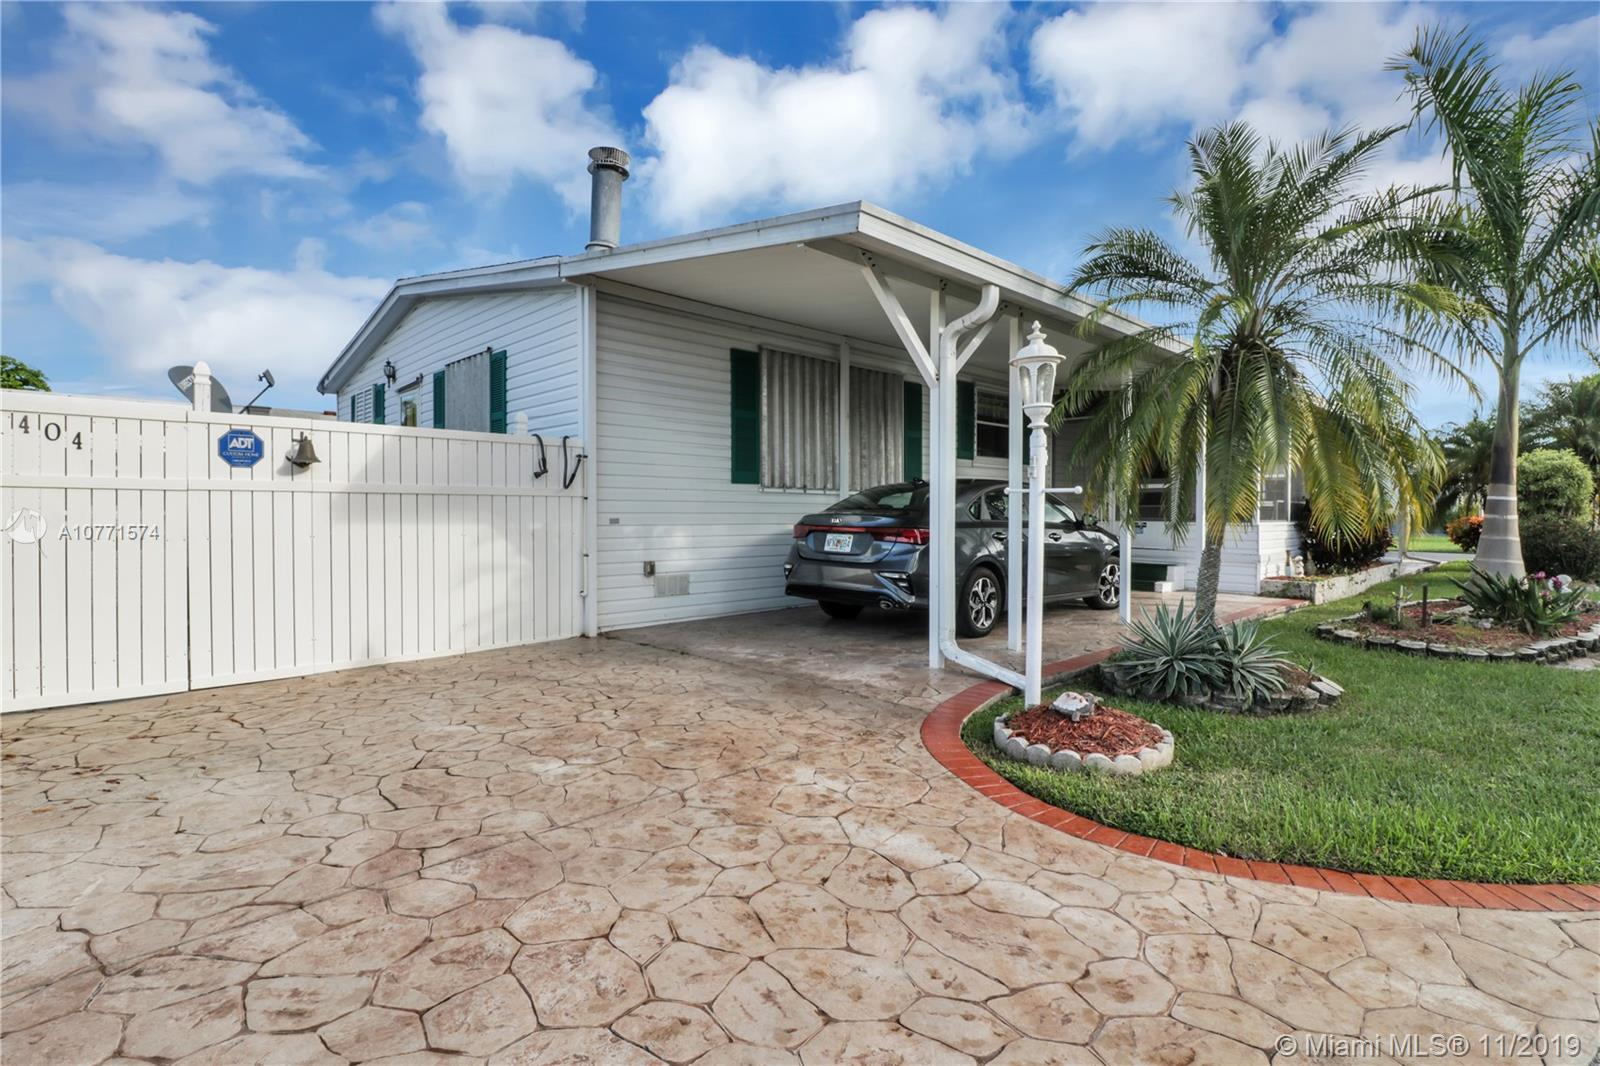 35303 SW 180th Ave, Florida City, FL 33034 - Florida City, FL real estate listing